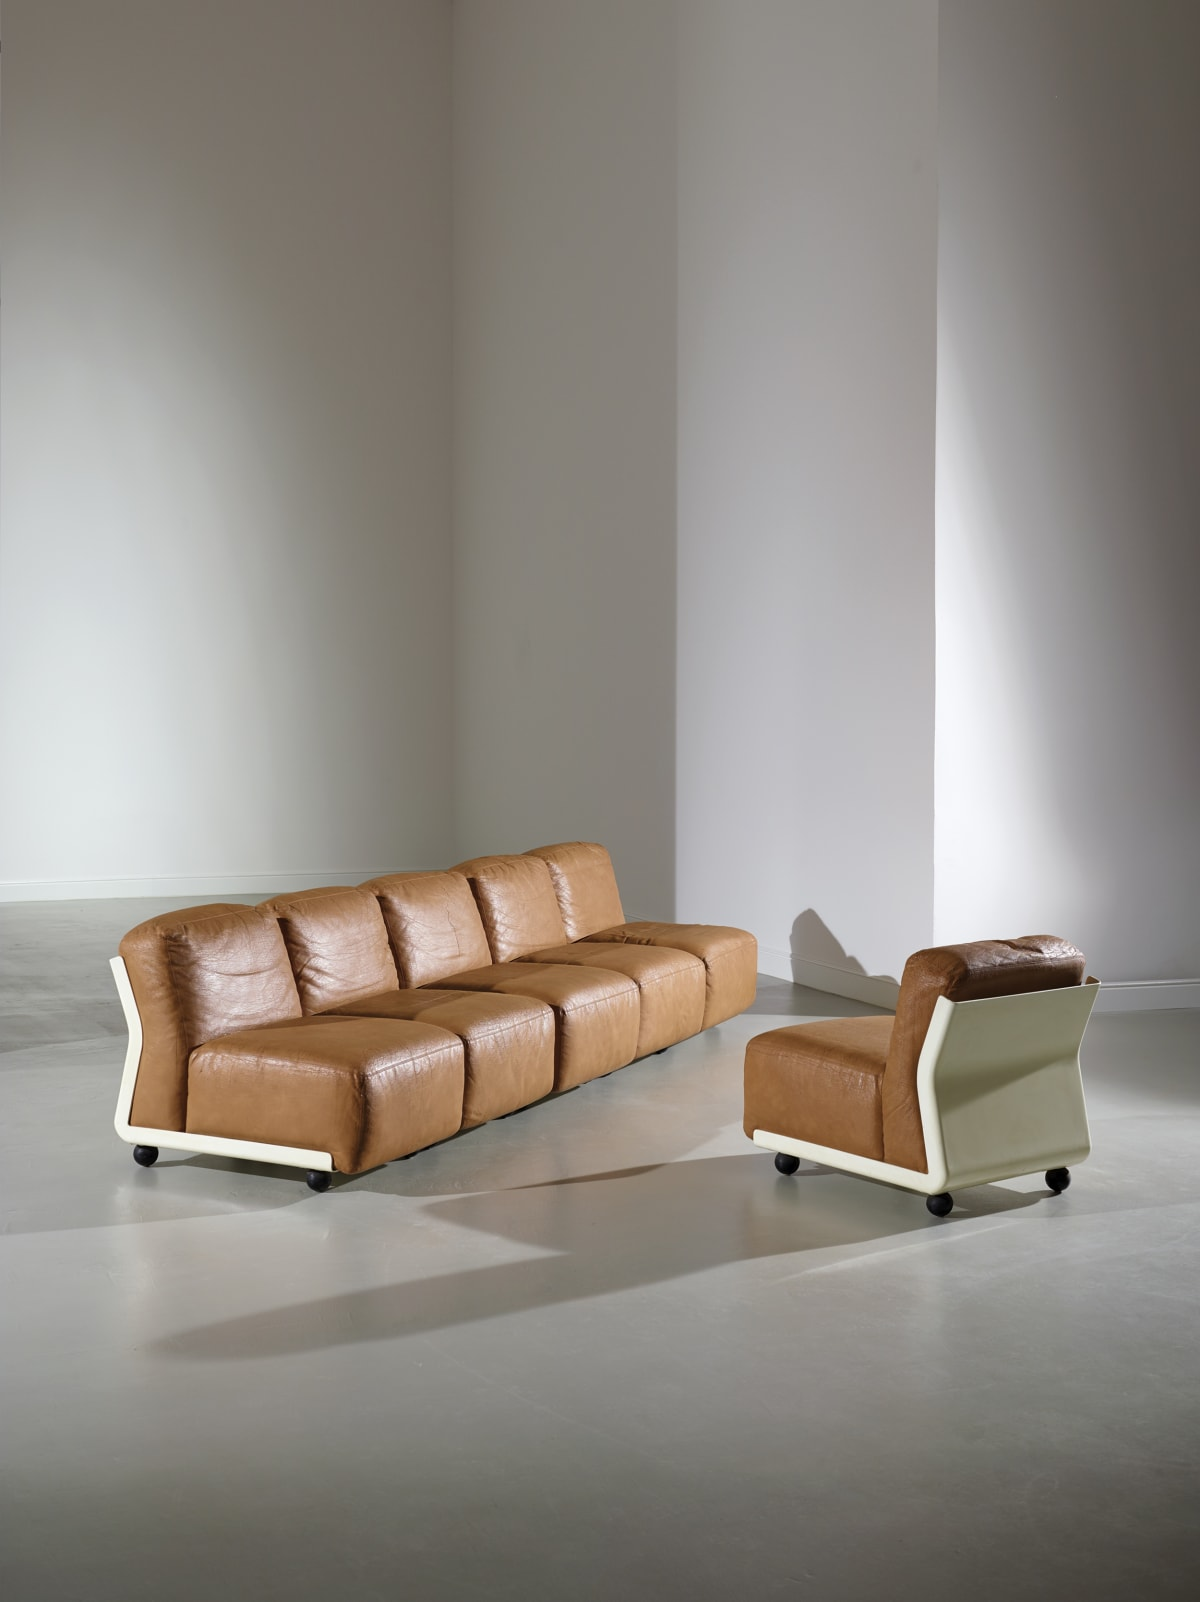 Mario Bellini Six Amanta modular chairs c.1966 For C&B Fiberglass, polyurethane covered in leather 71 x 62 x 80 cm (each)